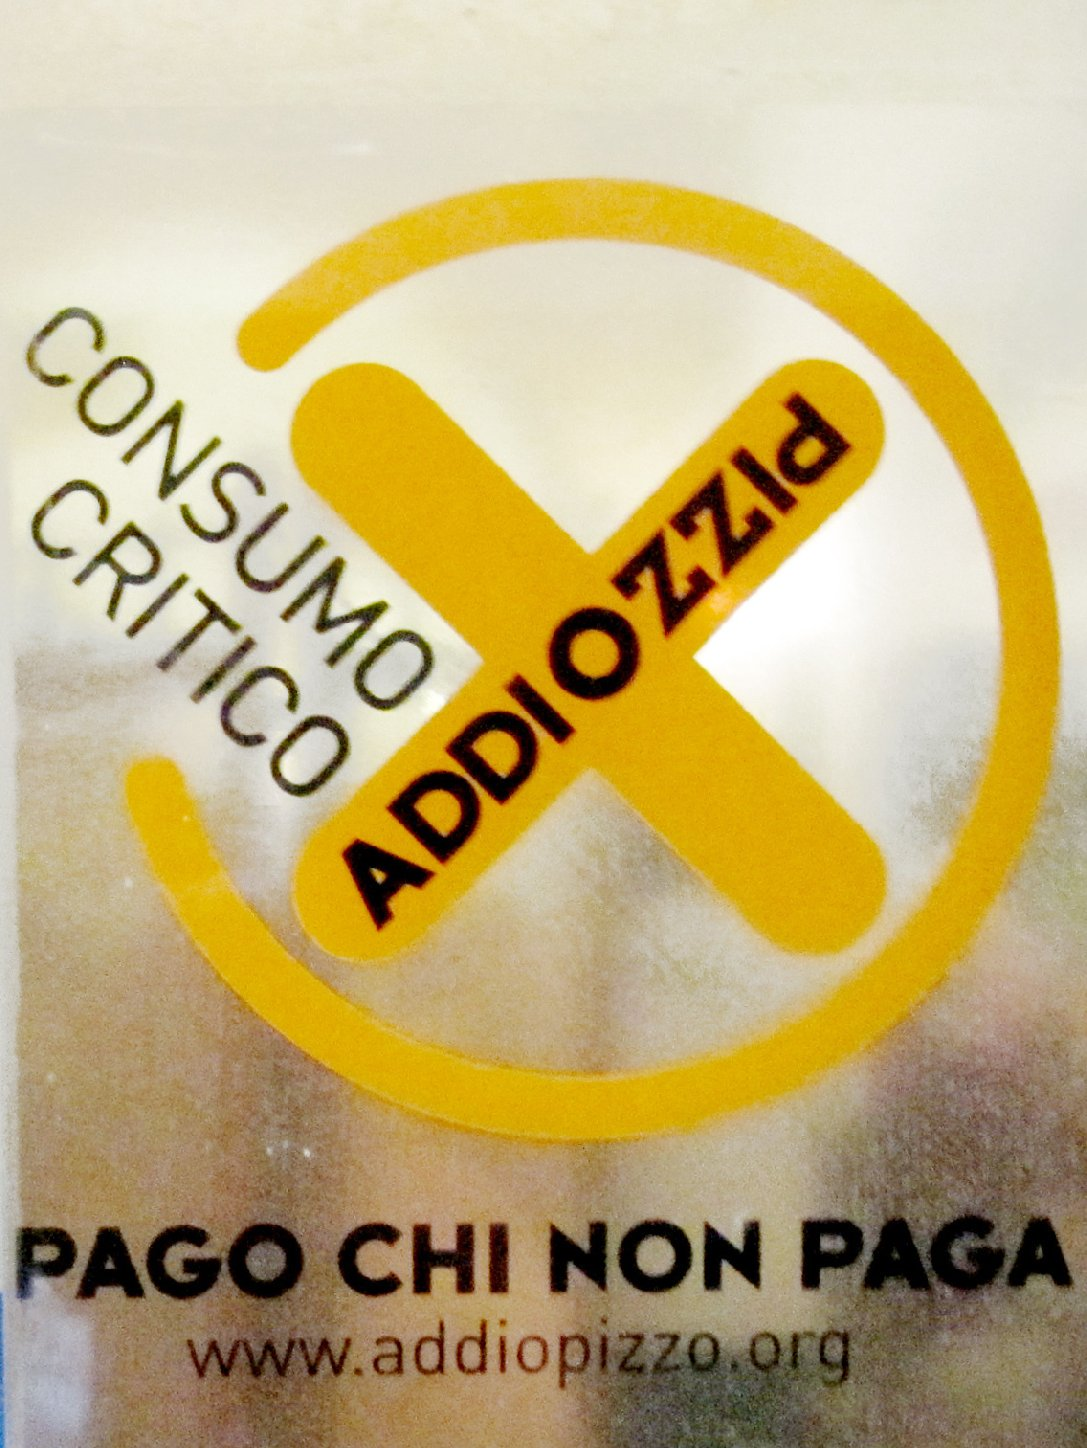 The Addiopizzo sticker on the door of a restaurant or hotel in Sicily tells you the establishment does not pay extortion money to the Mafia. Photo: The Kitchen Sisters